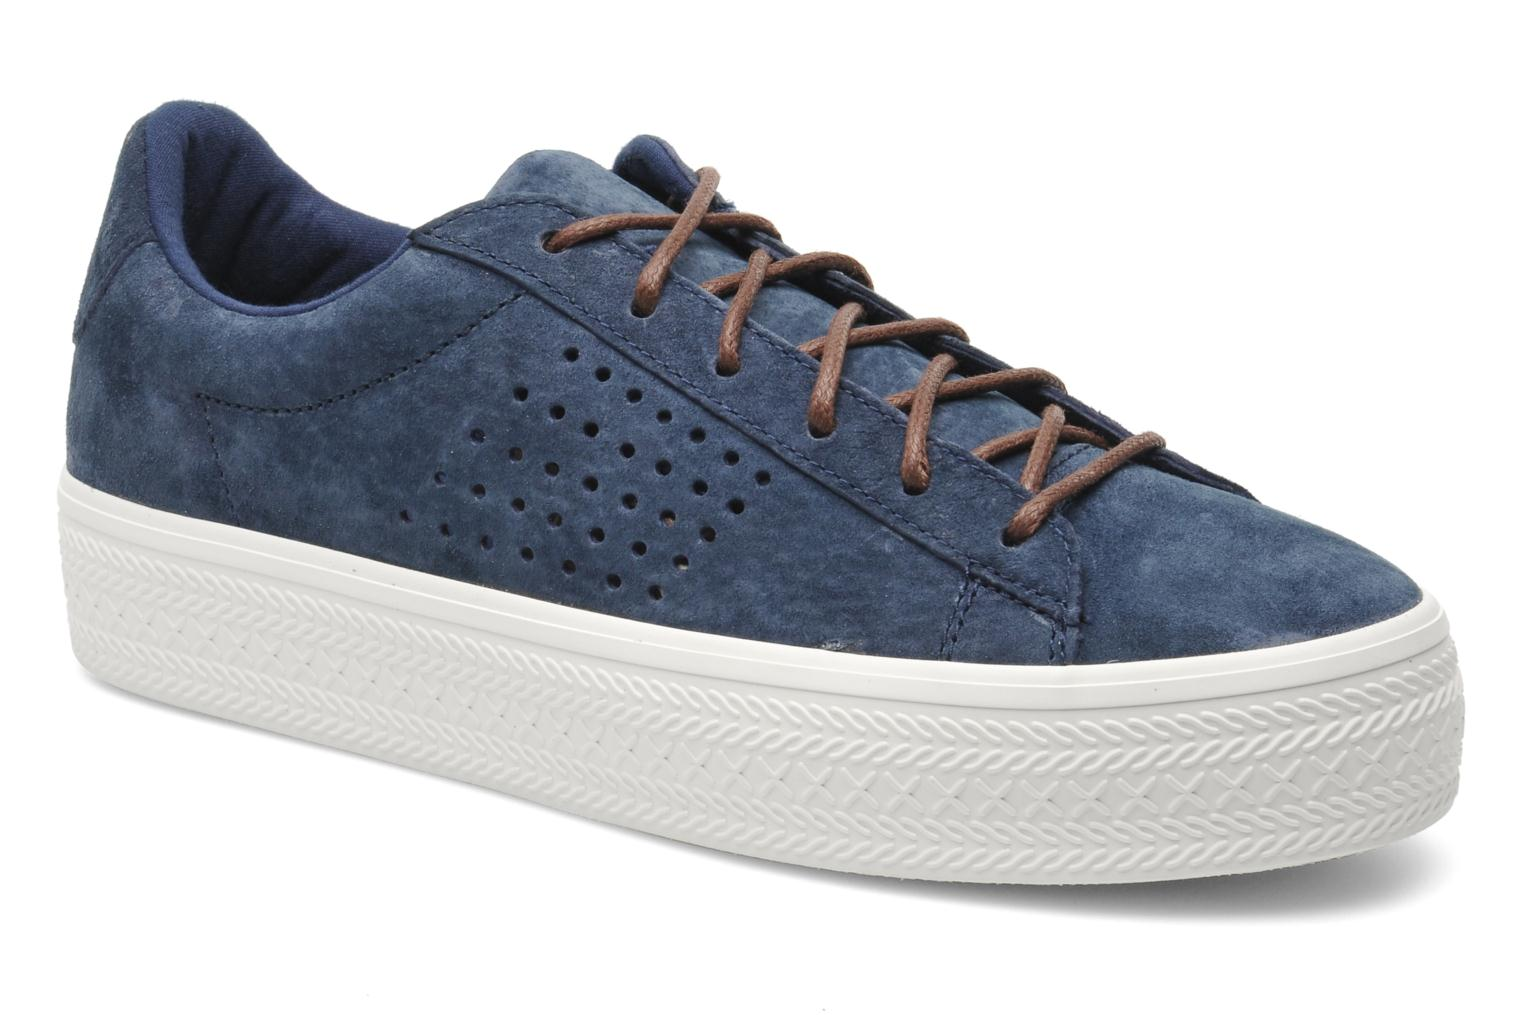 Sneakers Agate by Le Coq Sportif